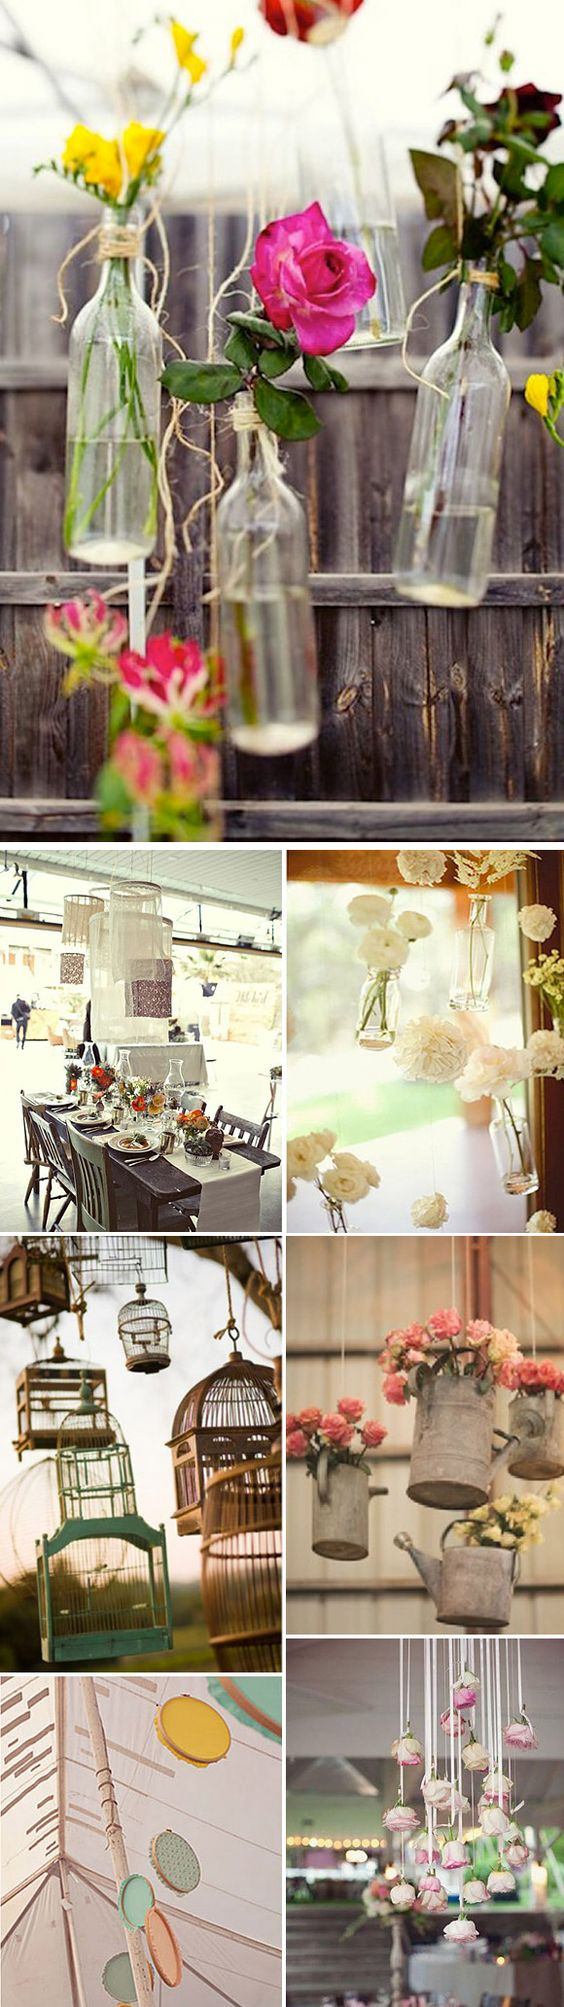 Decoraciones colgantes para bodas y fiestas mil ideas for Decoraciones para decorar